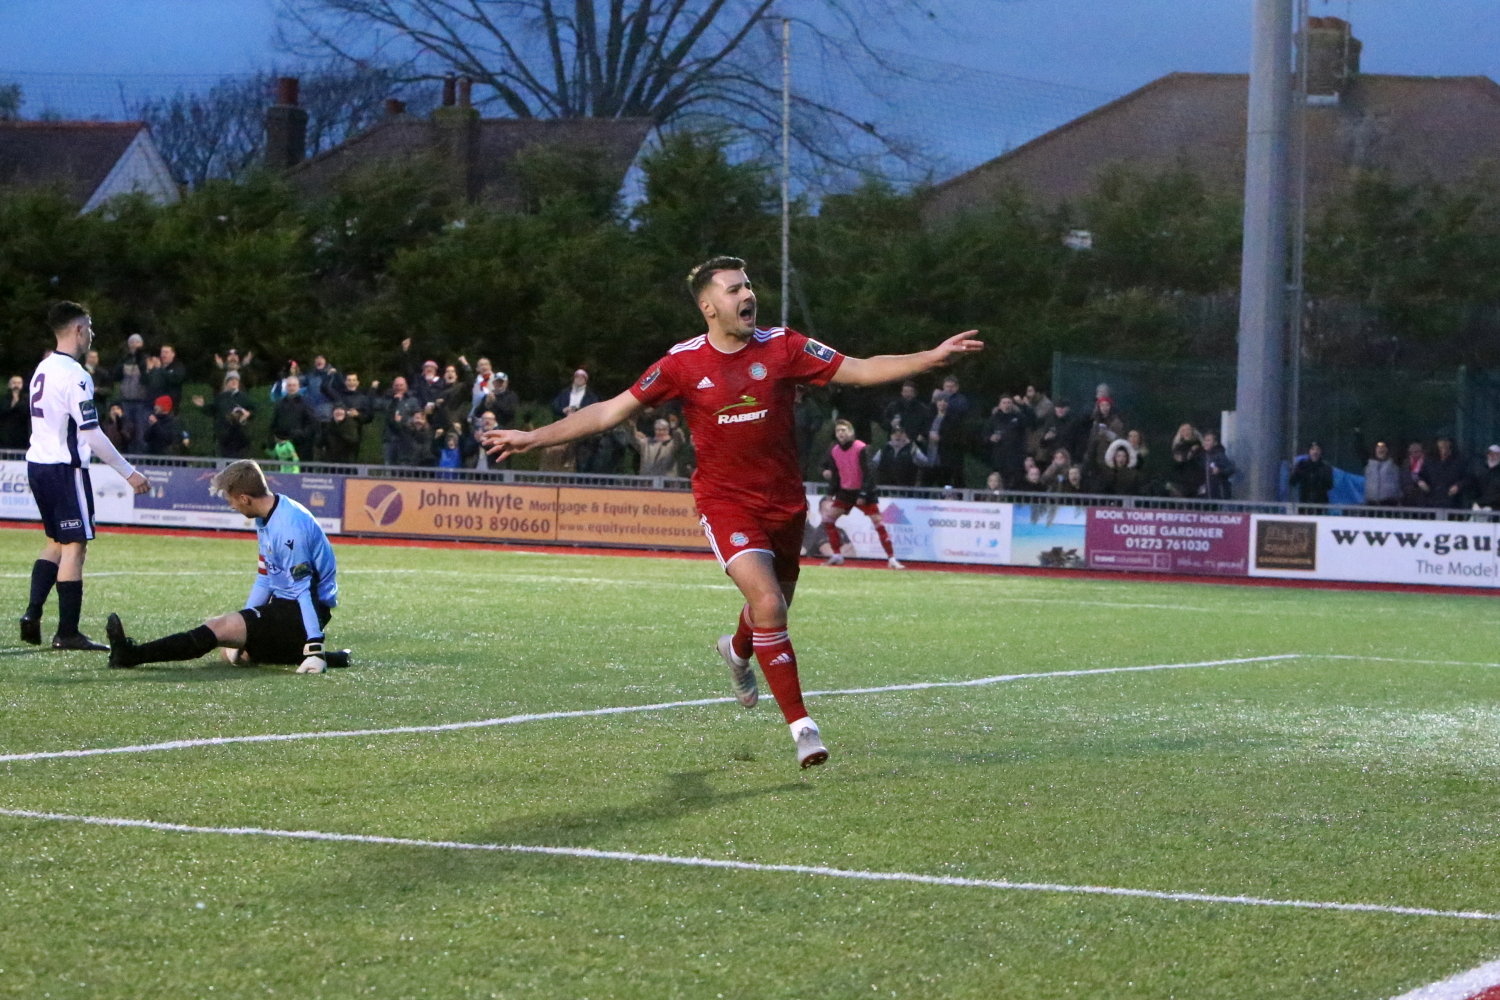 Read the full article - HIGHLIGHTS: Worthing 2-0 Corinthian Casuals [H] – League